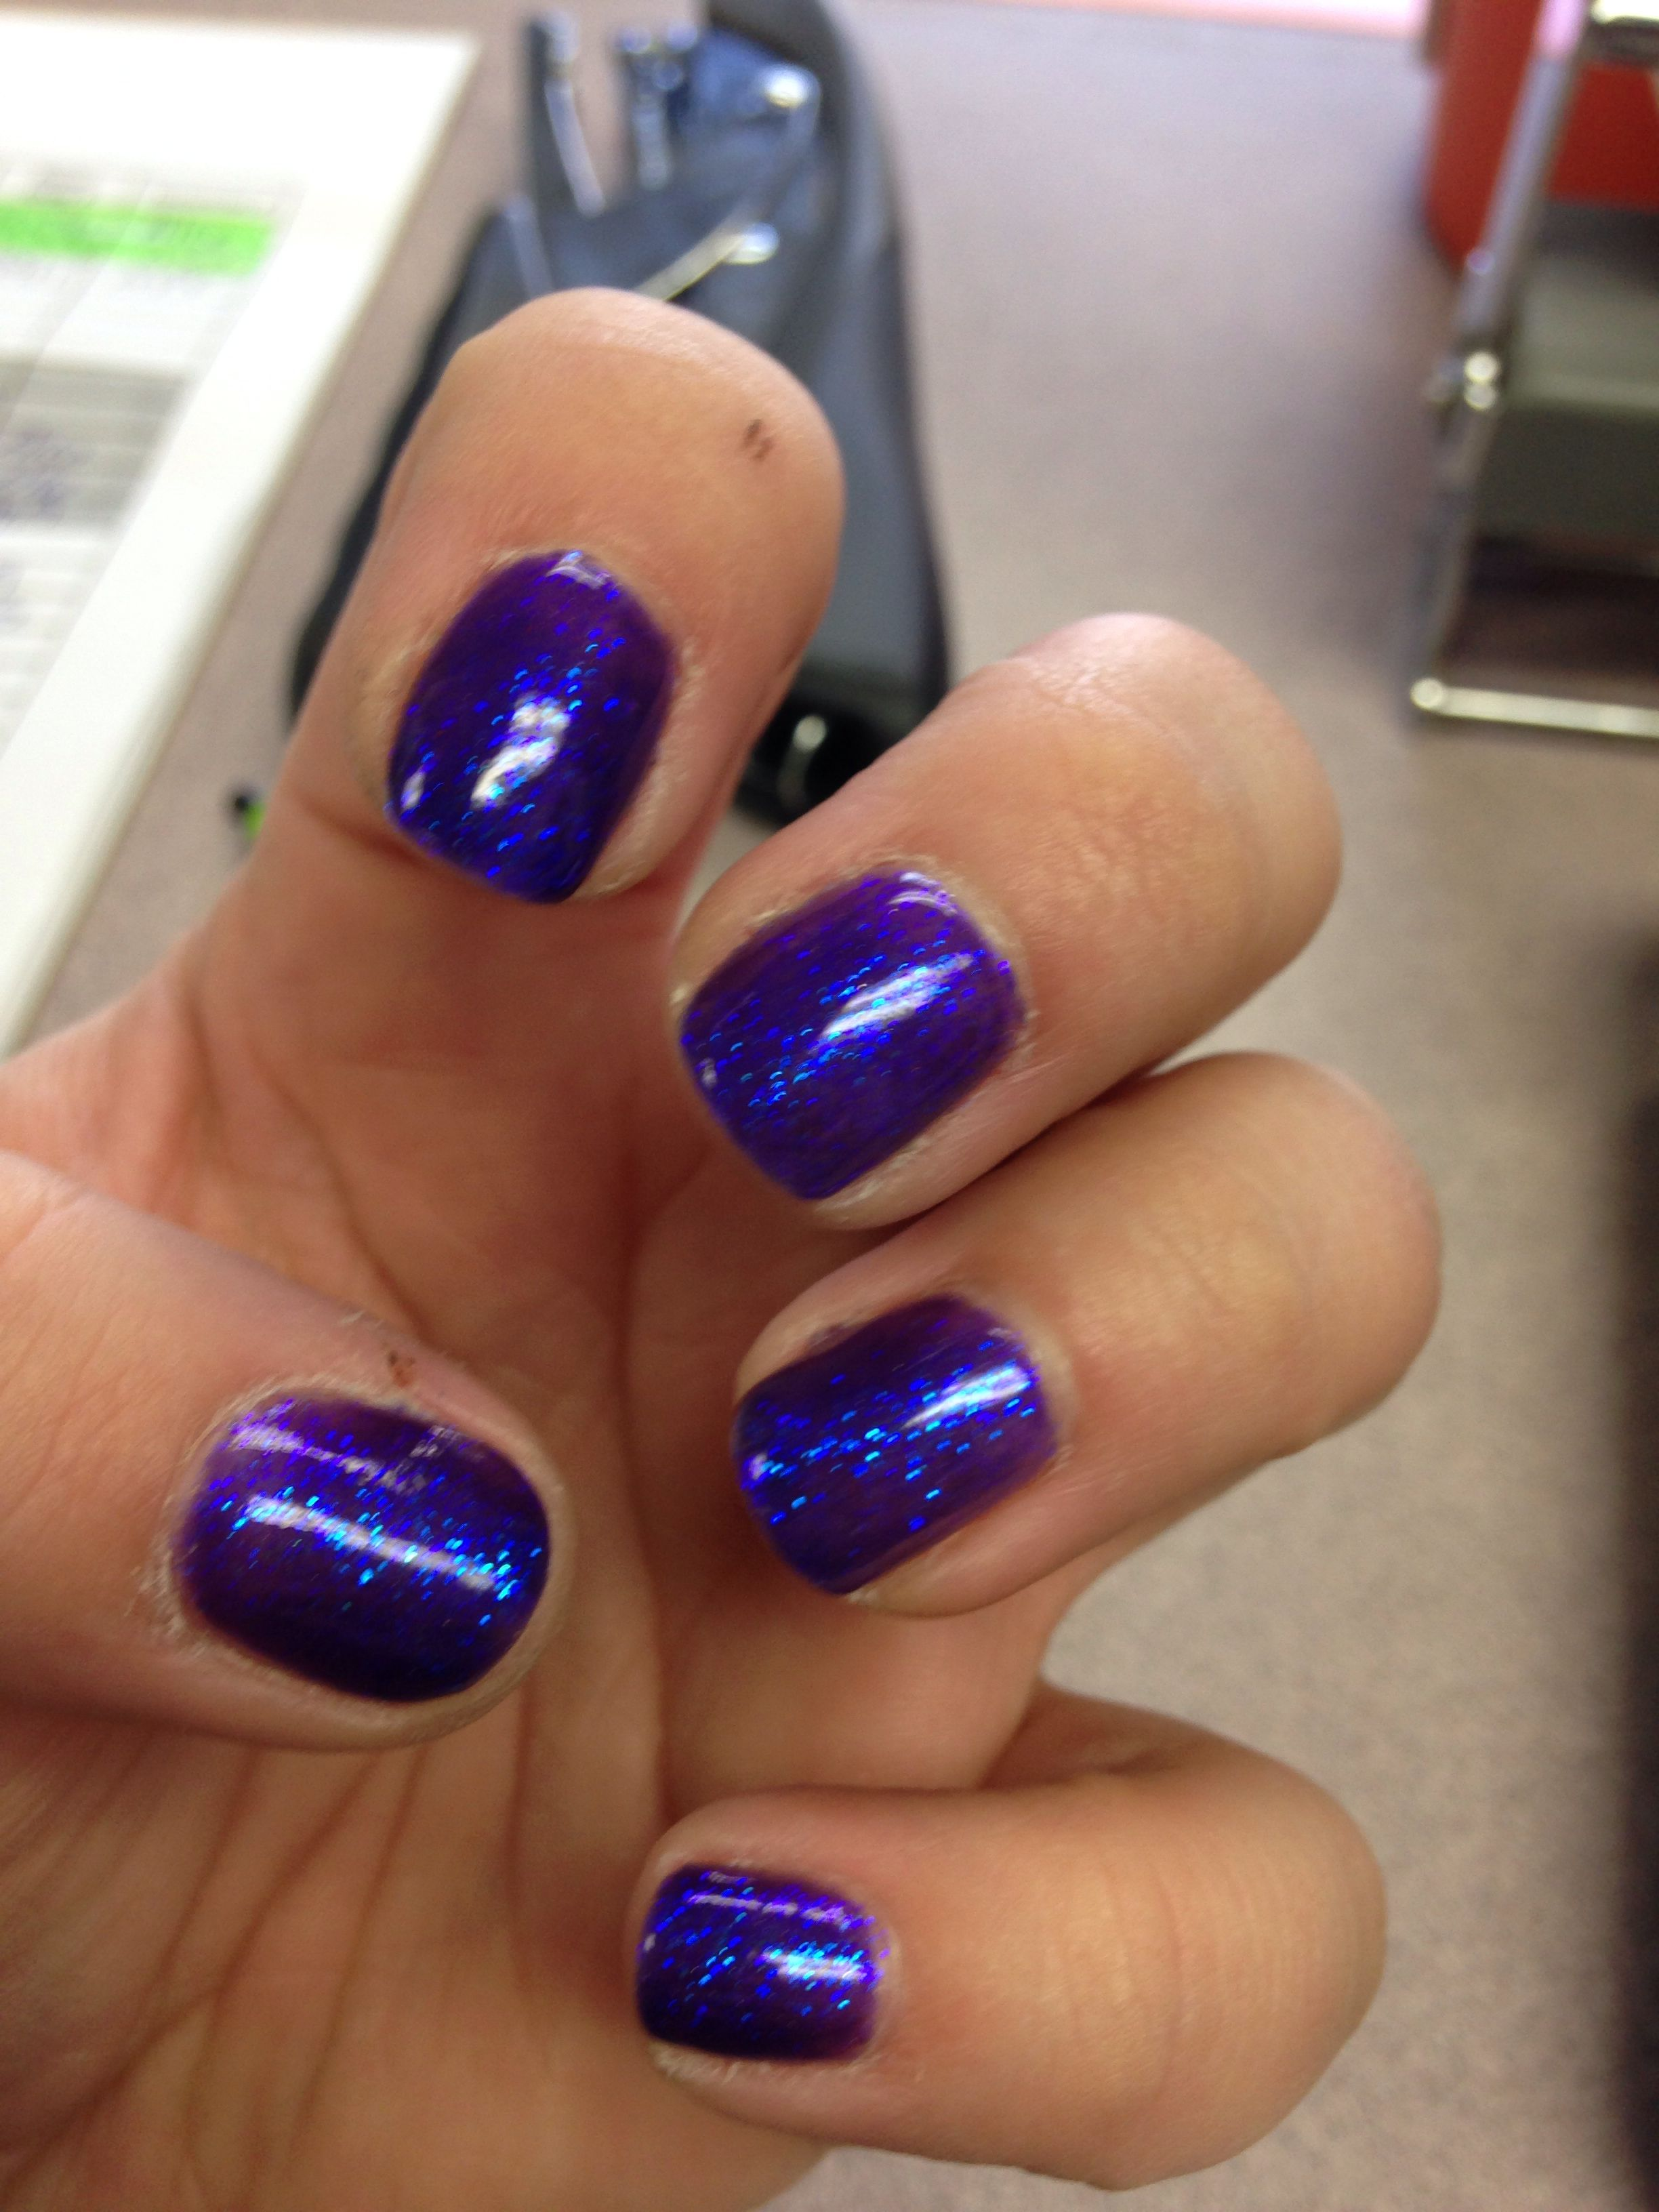 Shellac nails with glitter overlay | Nails | Pinterest